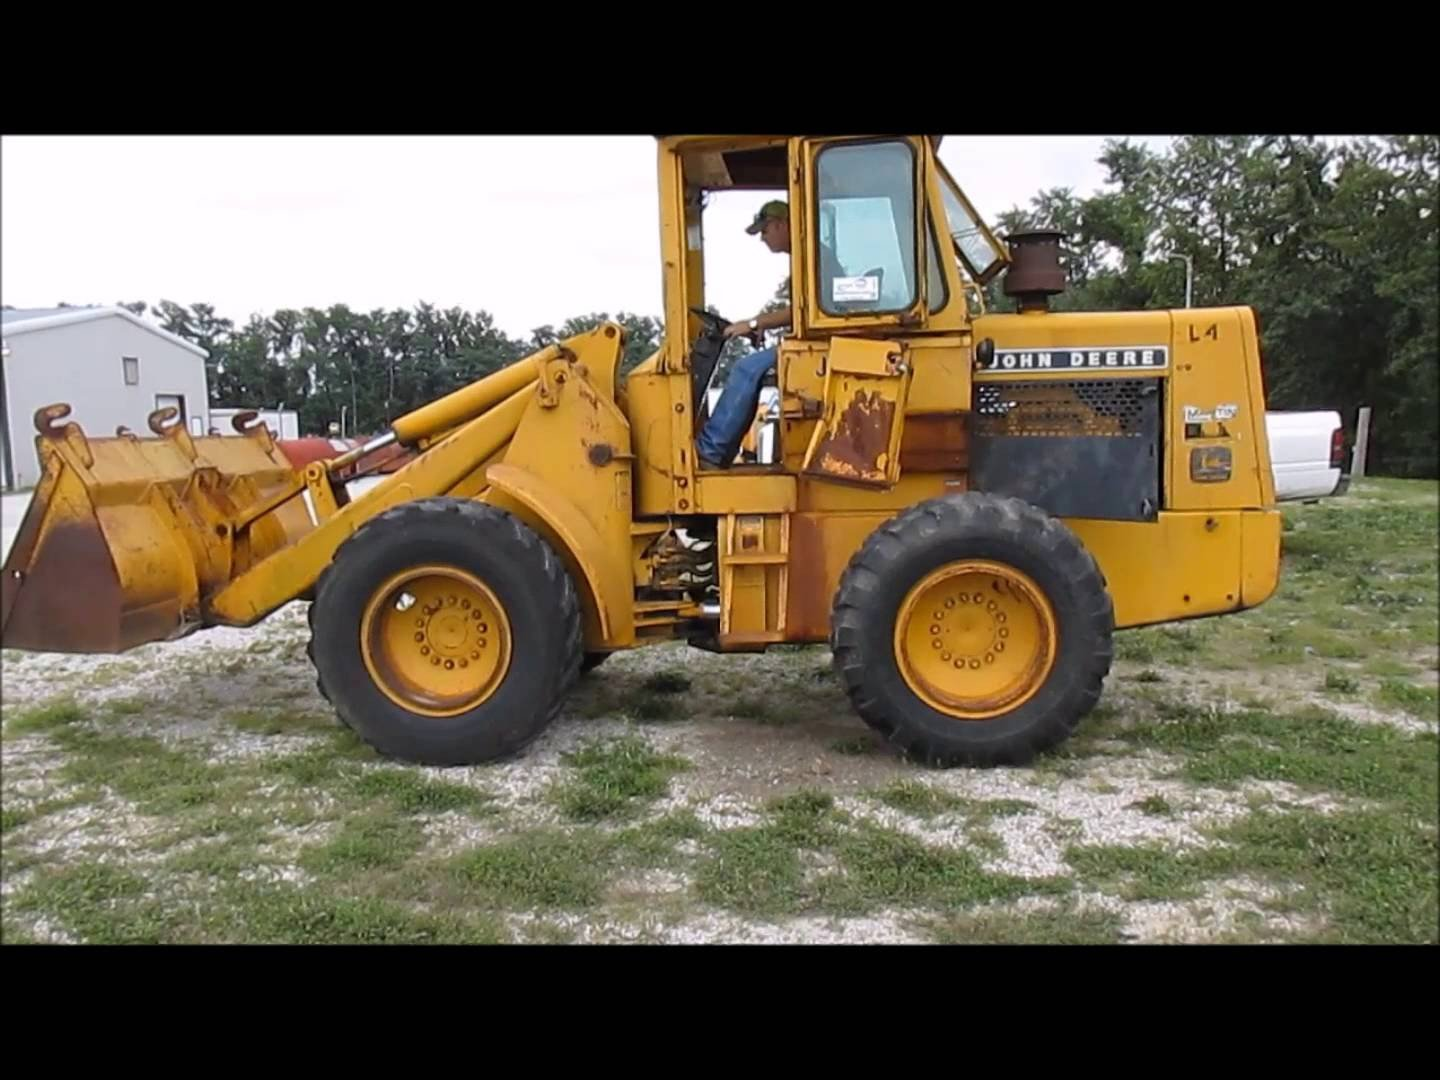 hight resolution of allowable 444h 544h tc44h tc loader repair you may also john deere truck tractor forklift manuals pdf manual for john deere 544h loader books and manual